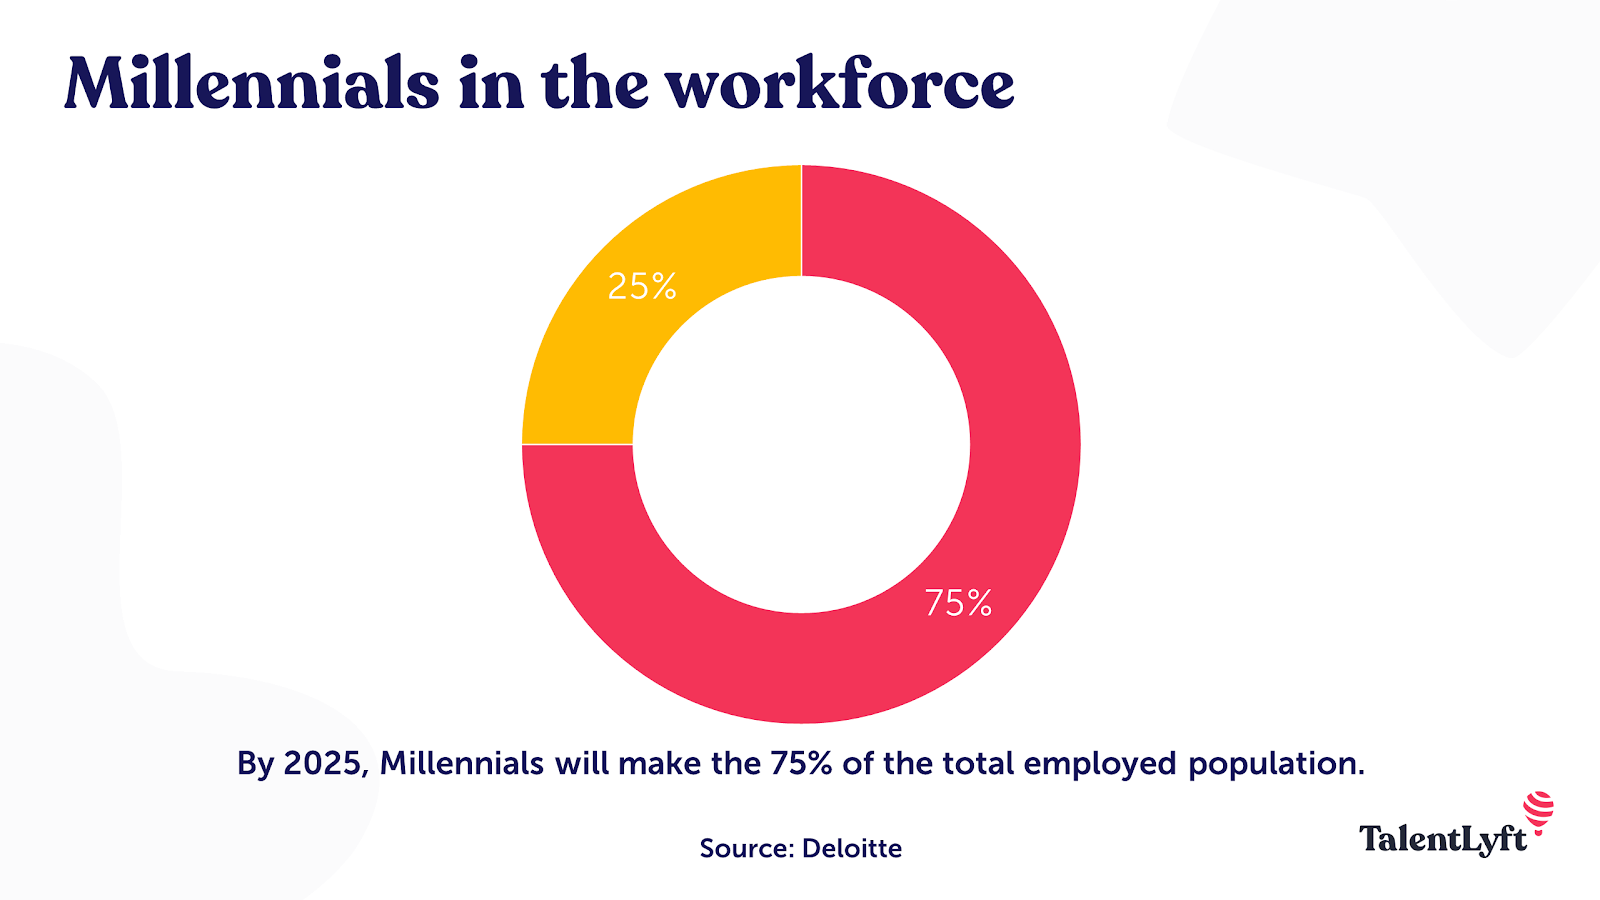 Millennials in the workplace statistic